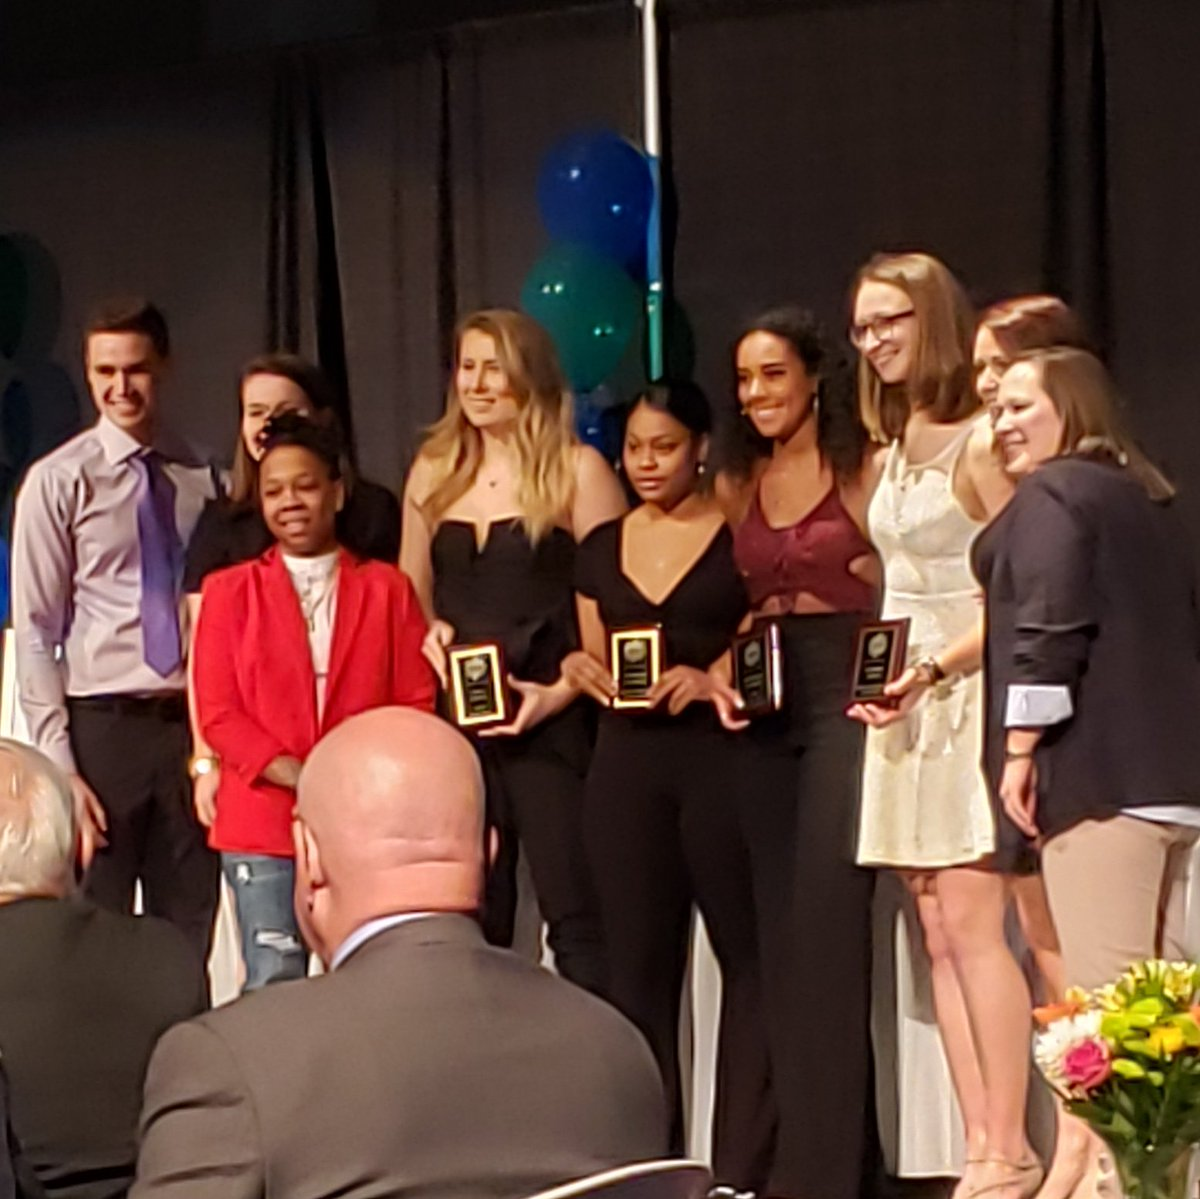 Big shout out to our womens basketball award winners. Devanee Dewey Lakers Pride, Angeline Campbell rookie of the year and Co MVP's Jamie Soffer and Michaela Branker. #golakers #ourway